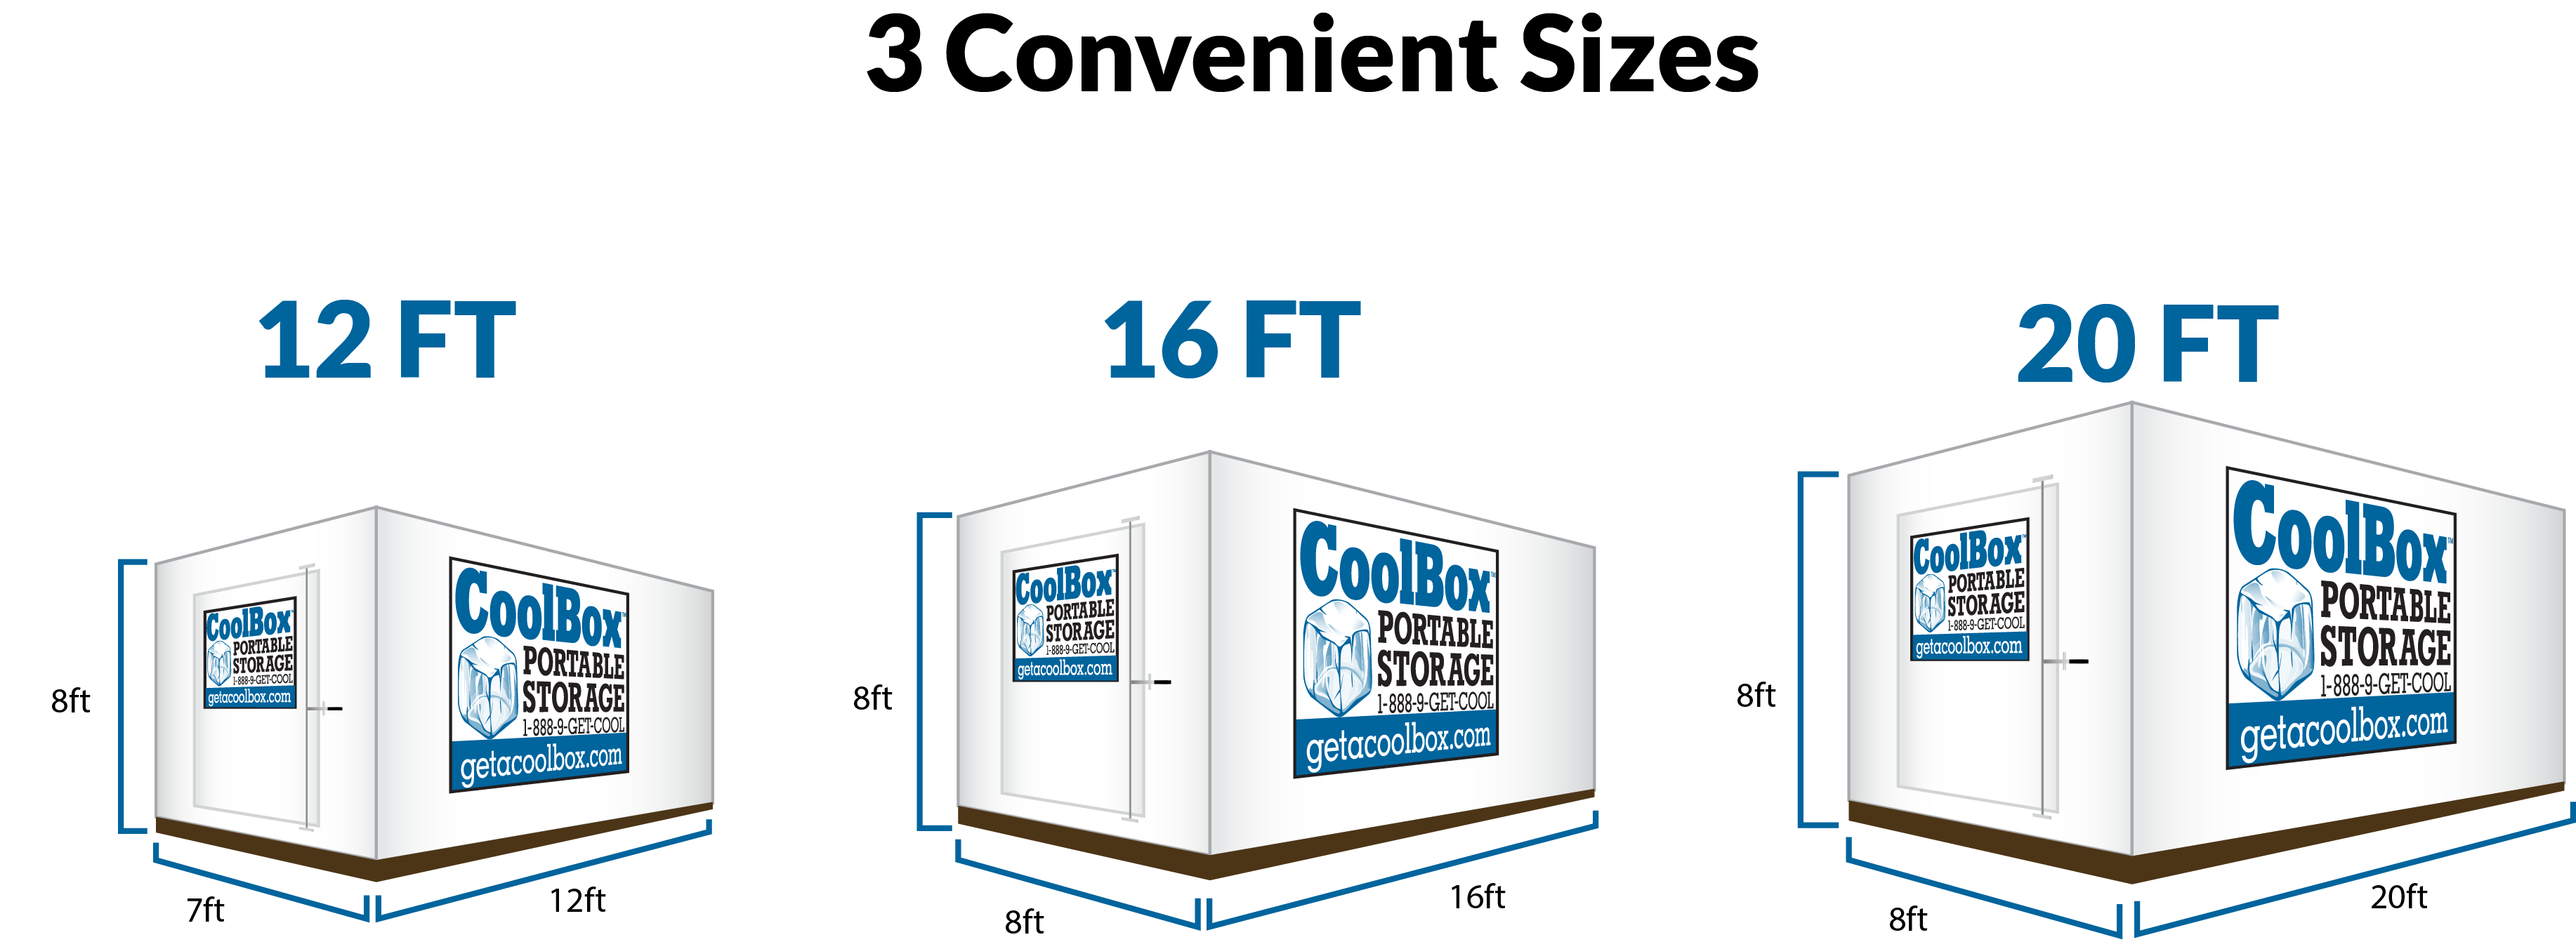 Renting A Pod For Storage : Cool box storage containers rent portable